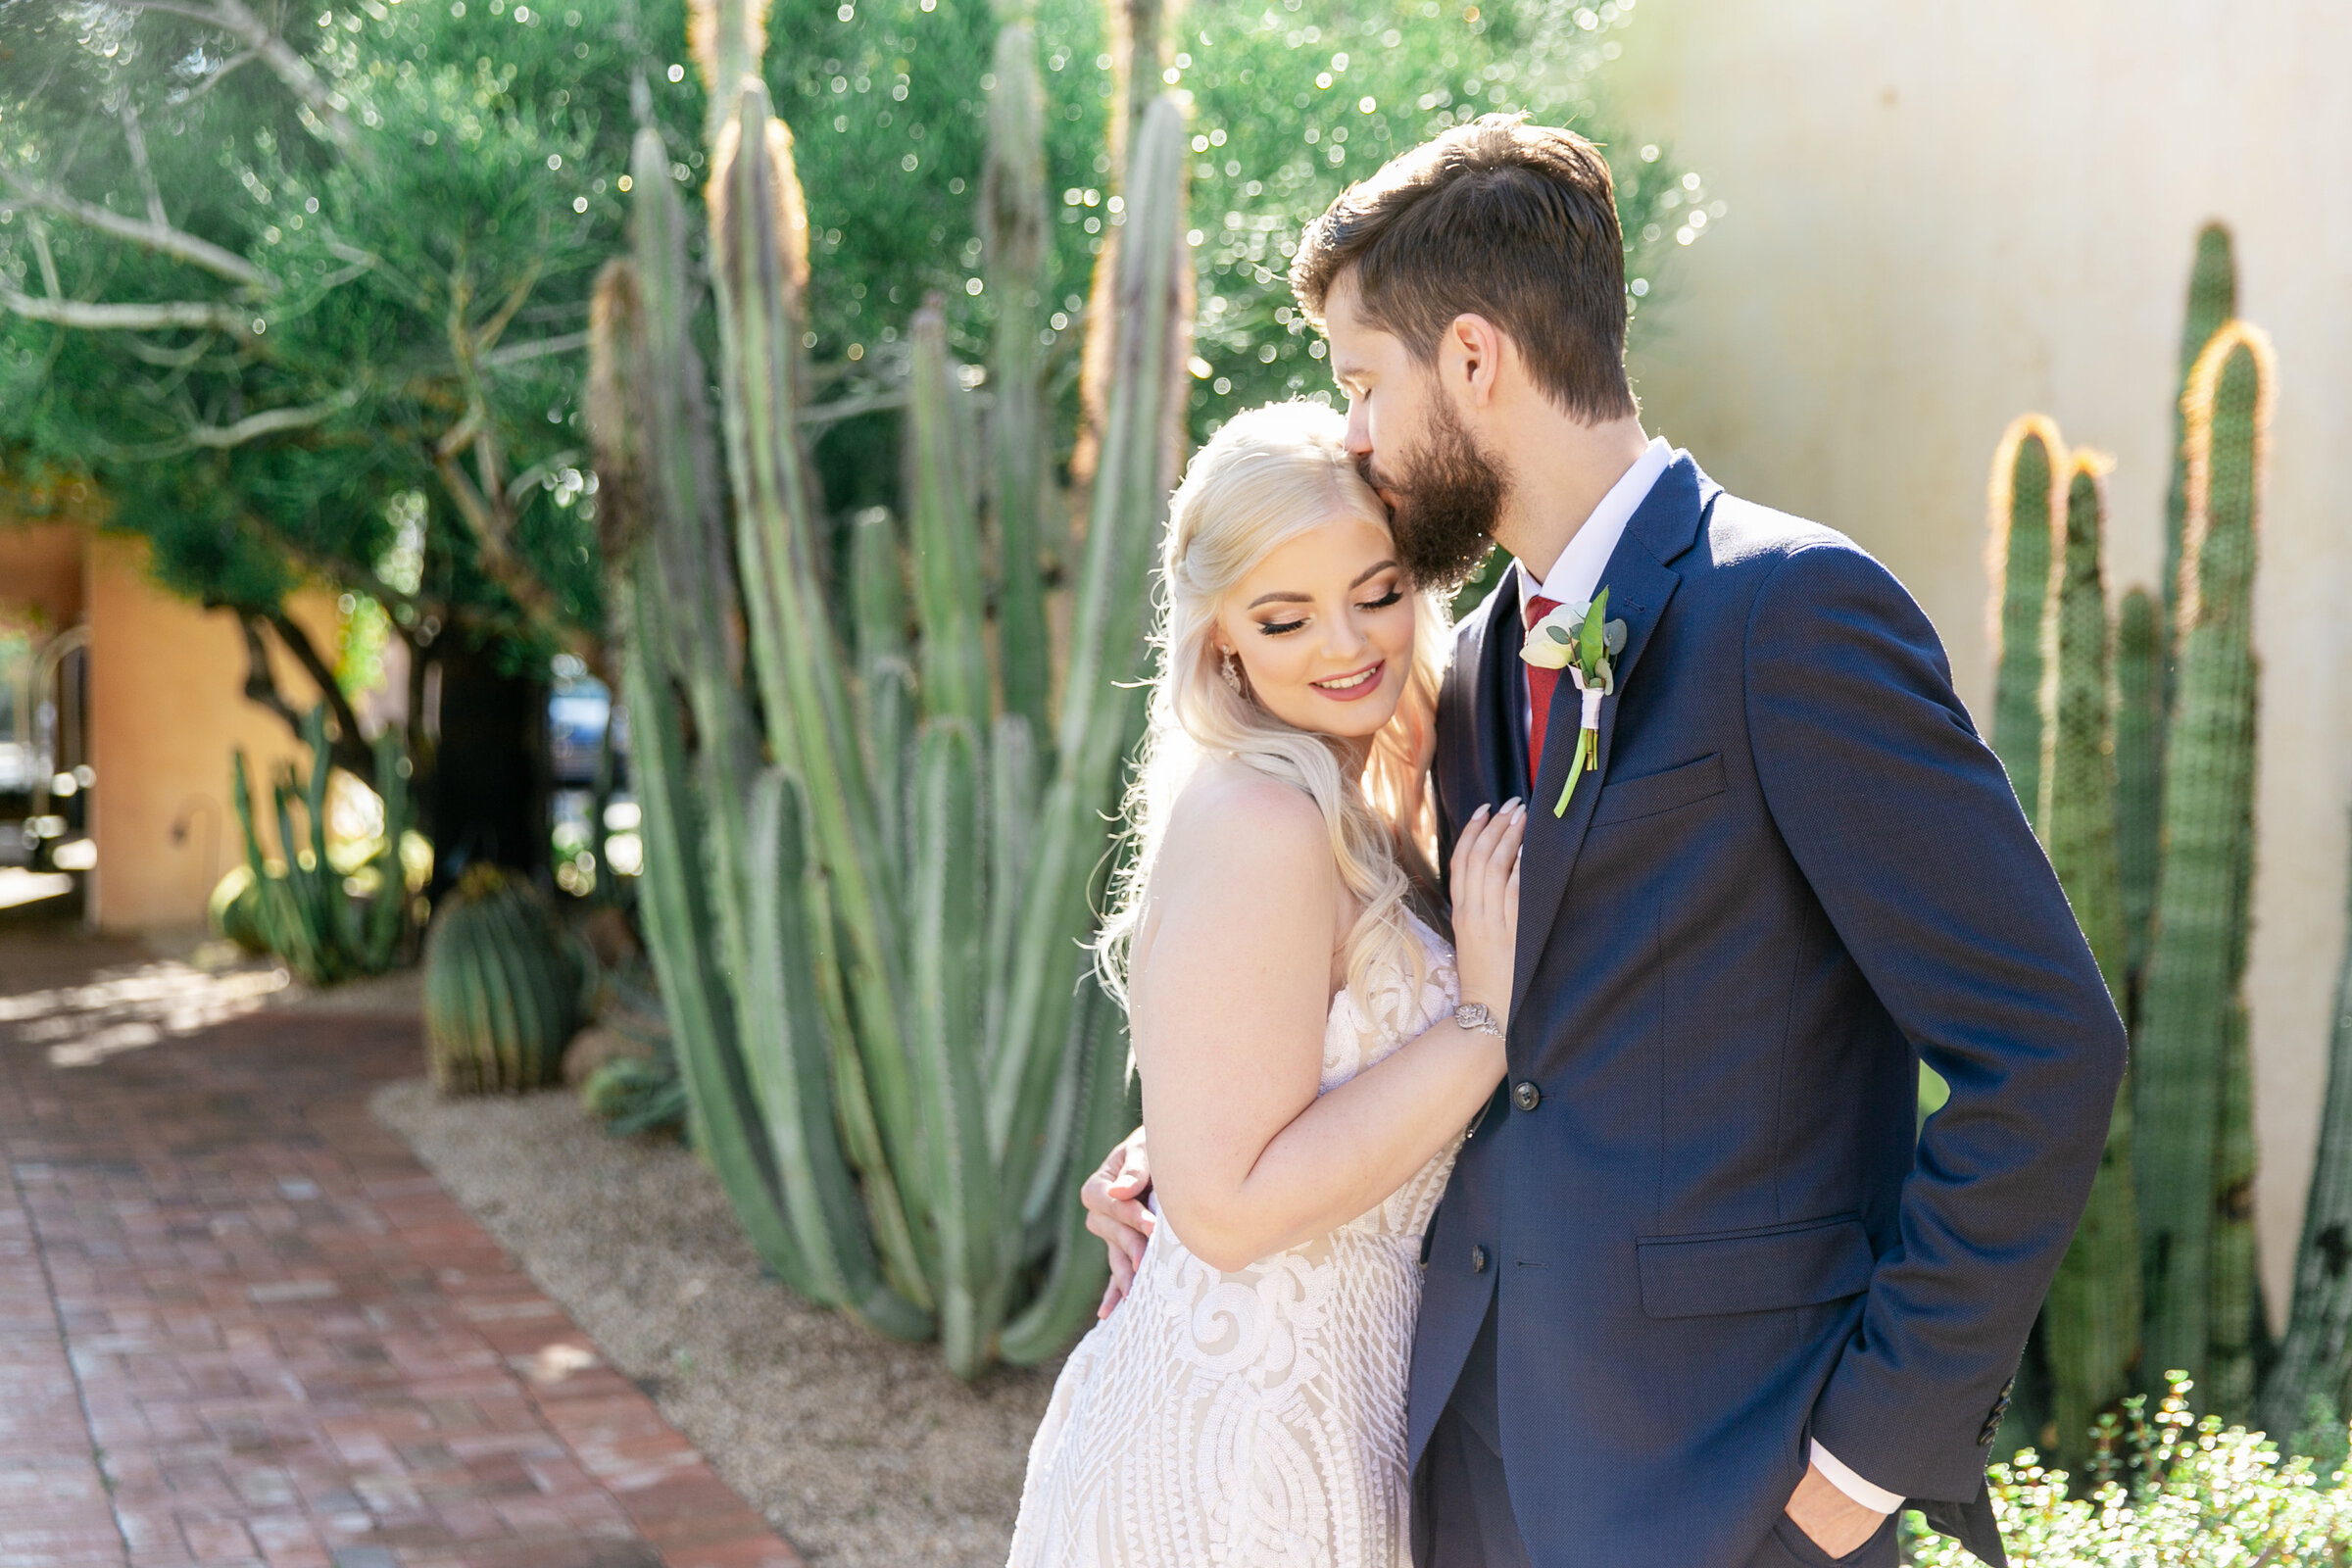 Karlie Colleen Photography - The Royal Palms Wedding - Some Like It Classic - Alex & Sam-155